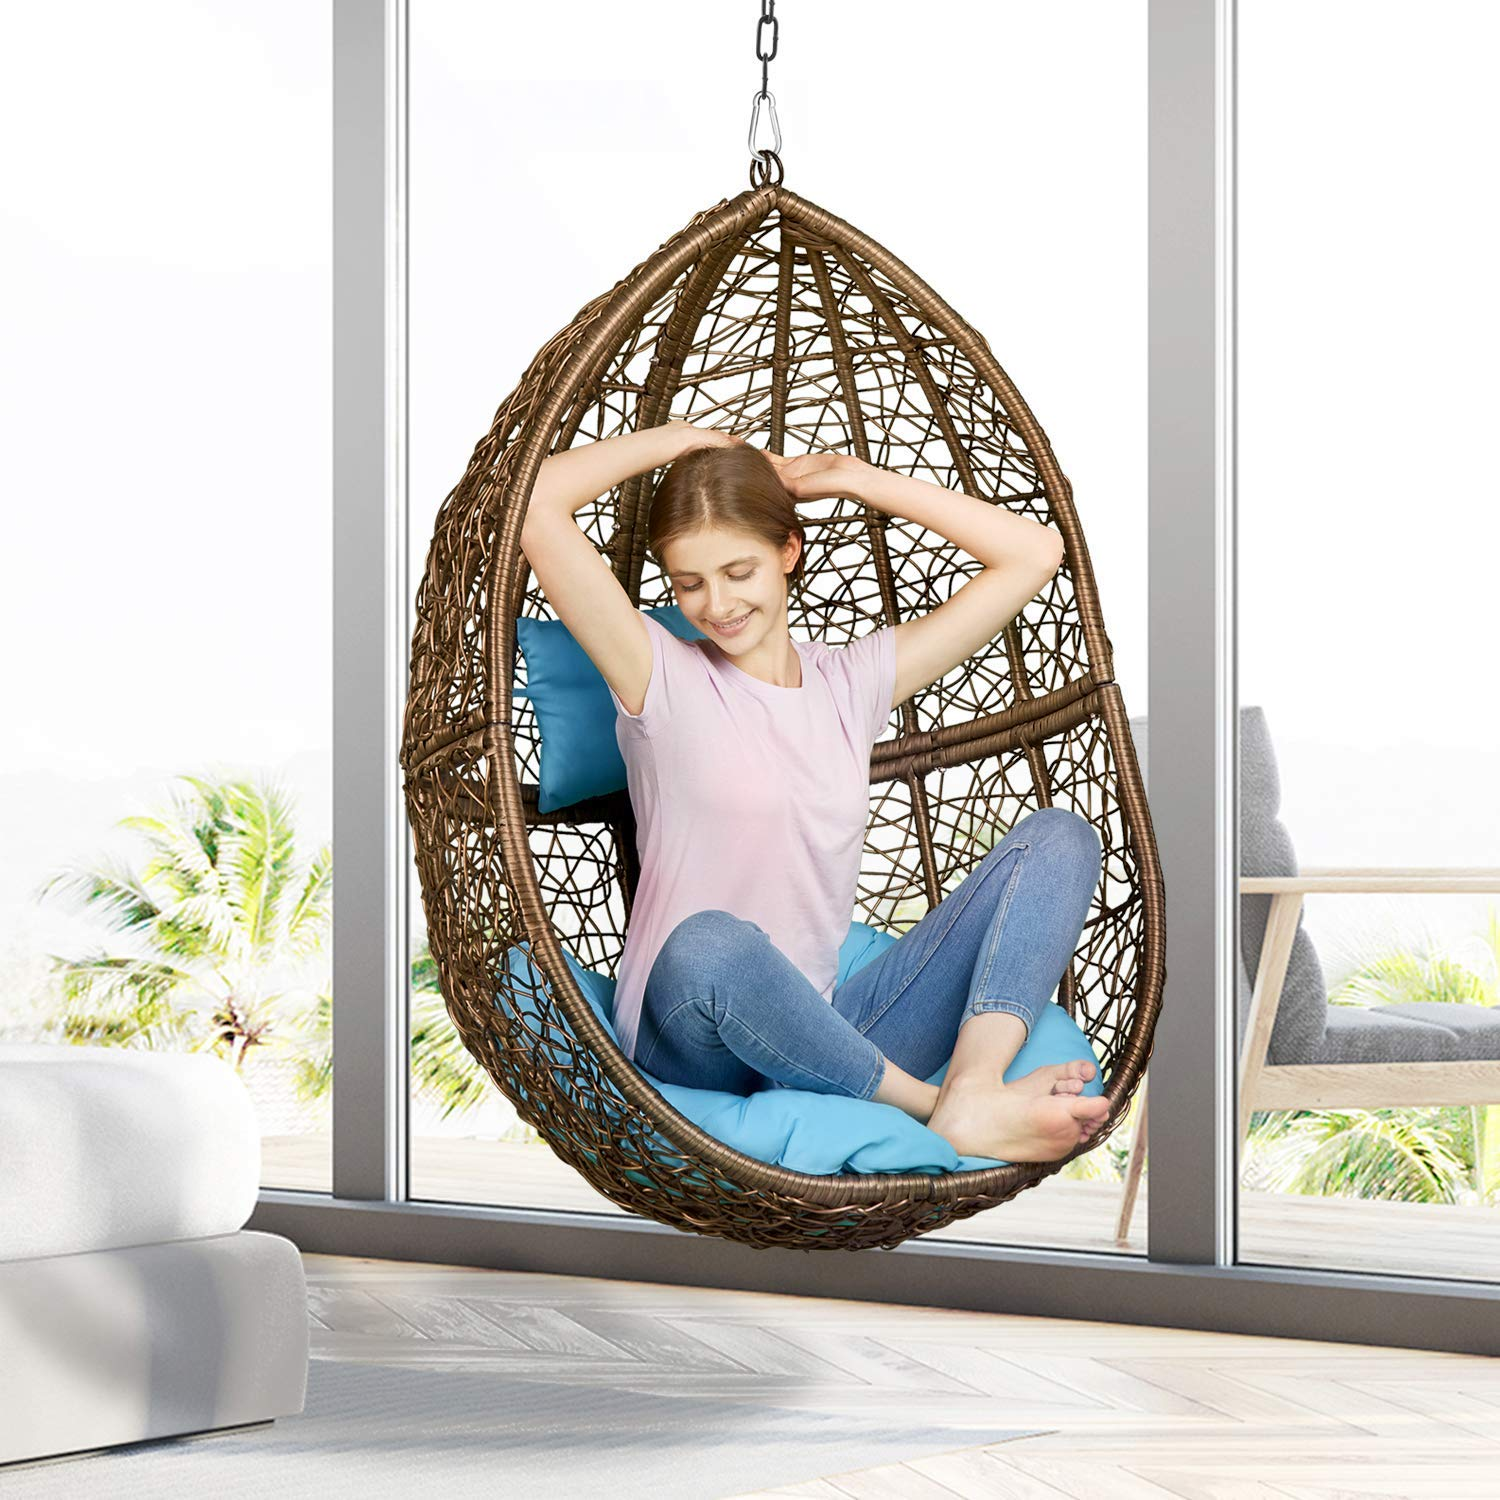 Hanging Egg Chair Without Stand